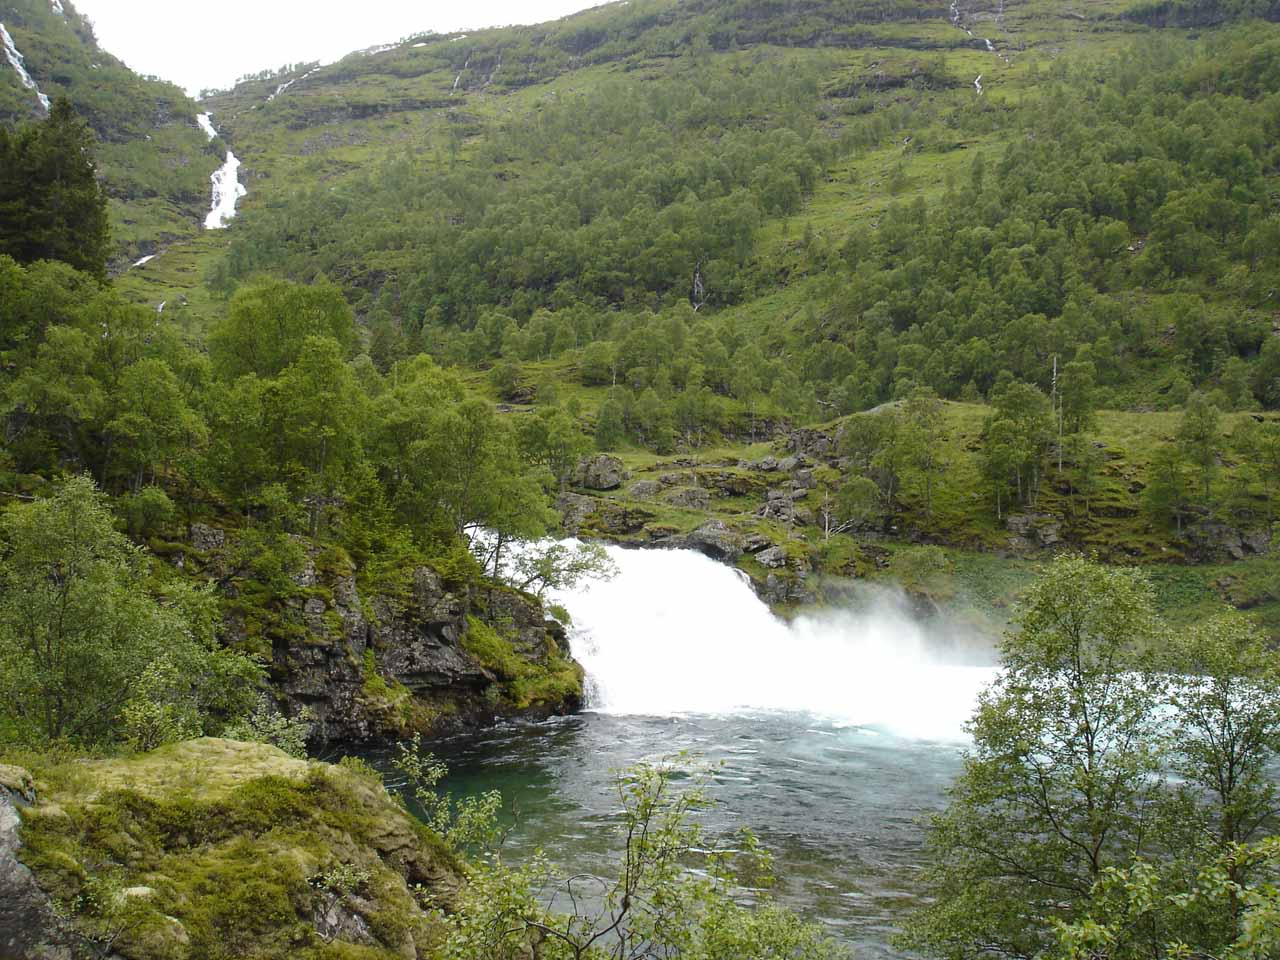 This waterfall was called Kårdalsfossen, and it was the turnaround point for our self-drive into Flamsdalen